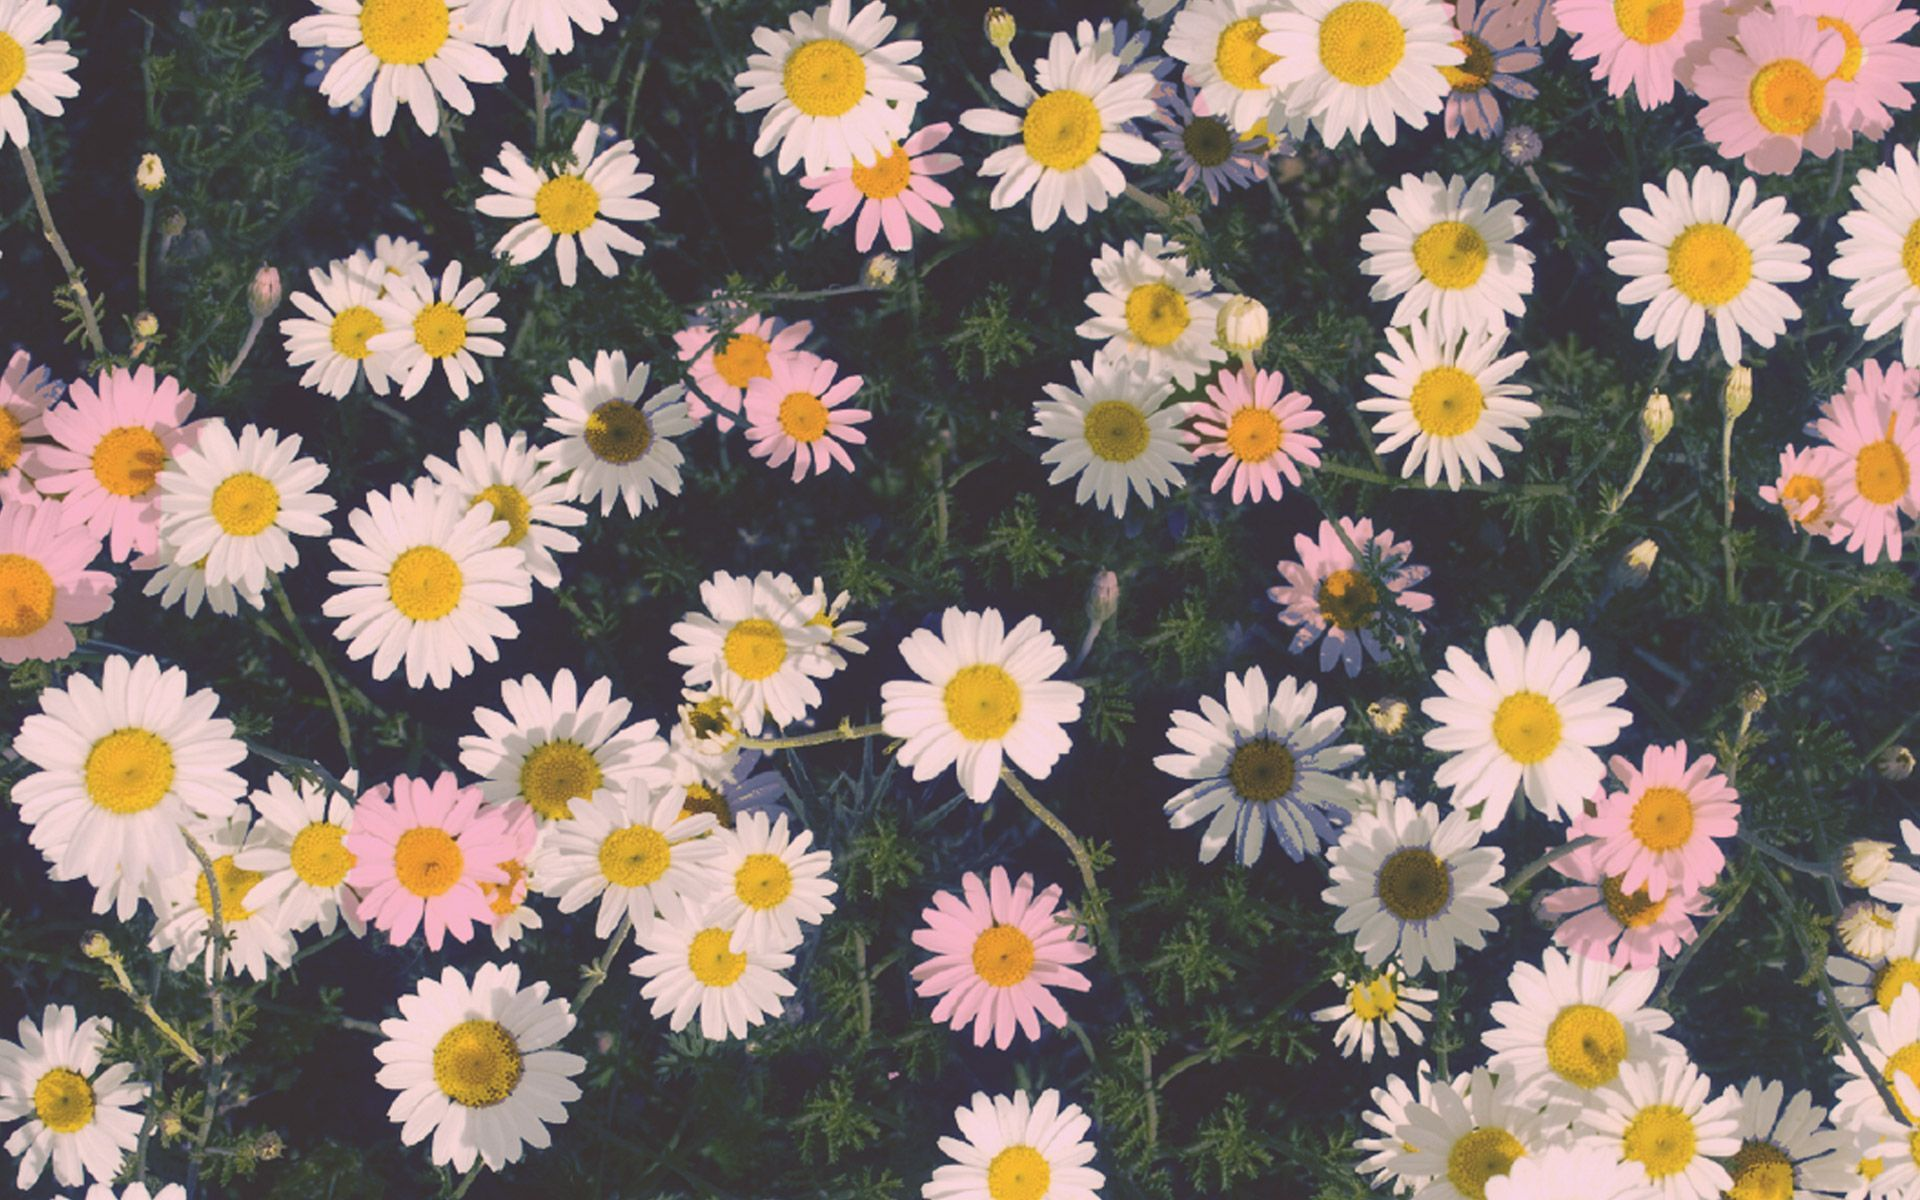 Daisy Aesthetic Wallpapers on WallpaperDog